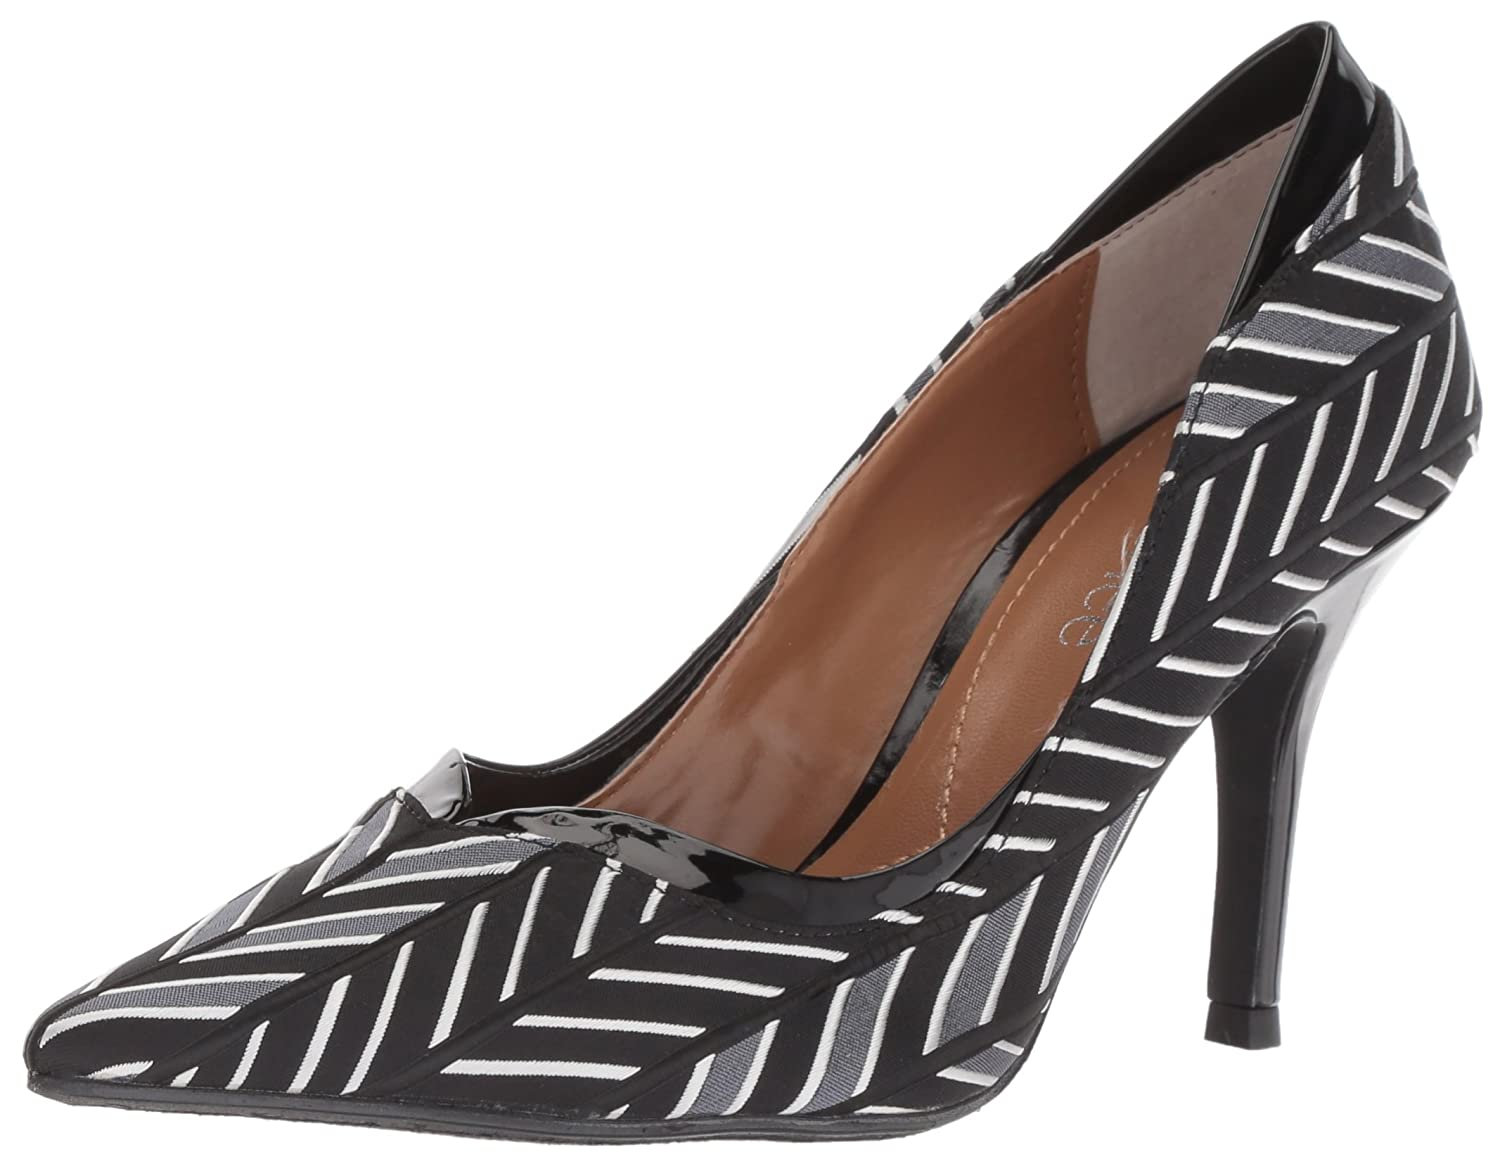 J.Renee Women's Alainn Pump B0741SBB2M 7.5 W US|Black/Gray/White